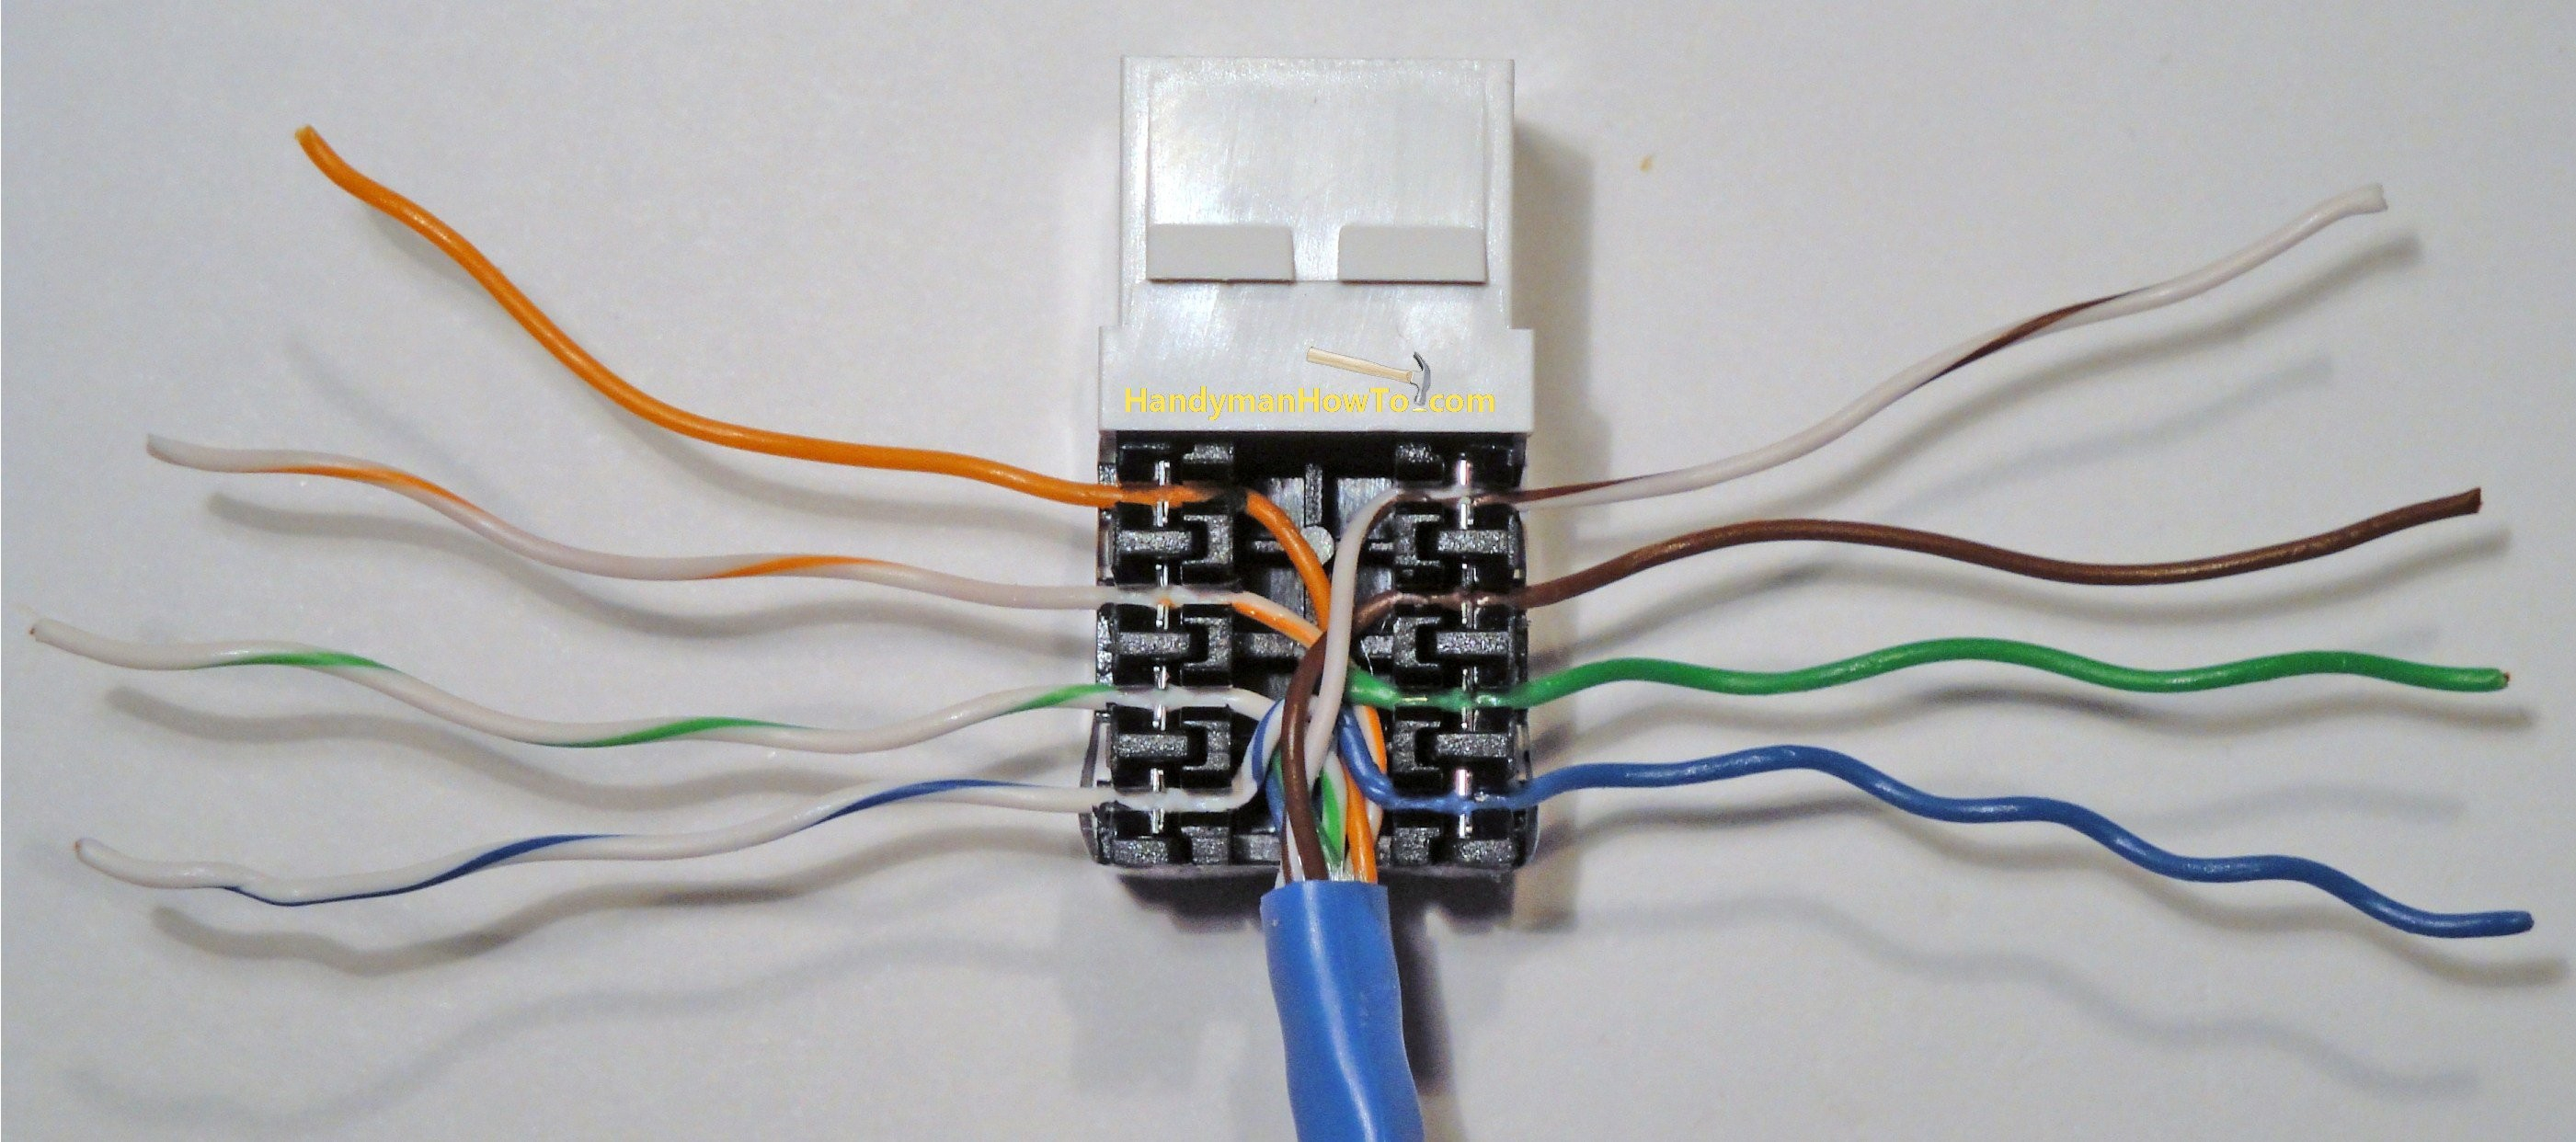 ethernet wall socket wiring diagram Download-Cat5 Wall Plate Wiring Diagram Beautiful Network Wiring In Wall Plex Wiring • Kpopindo 17-k